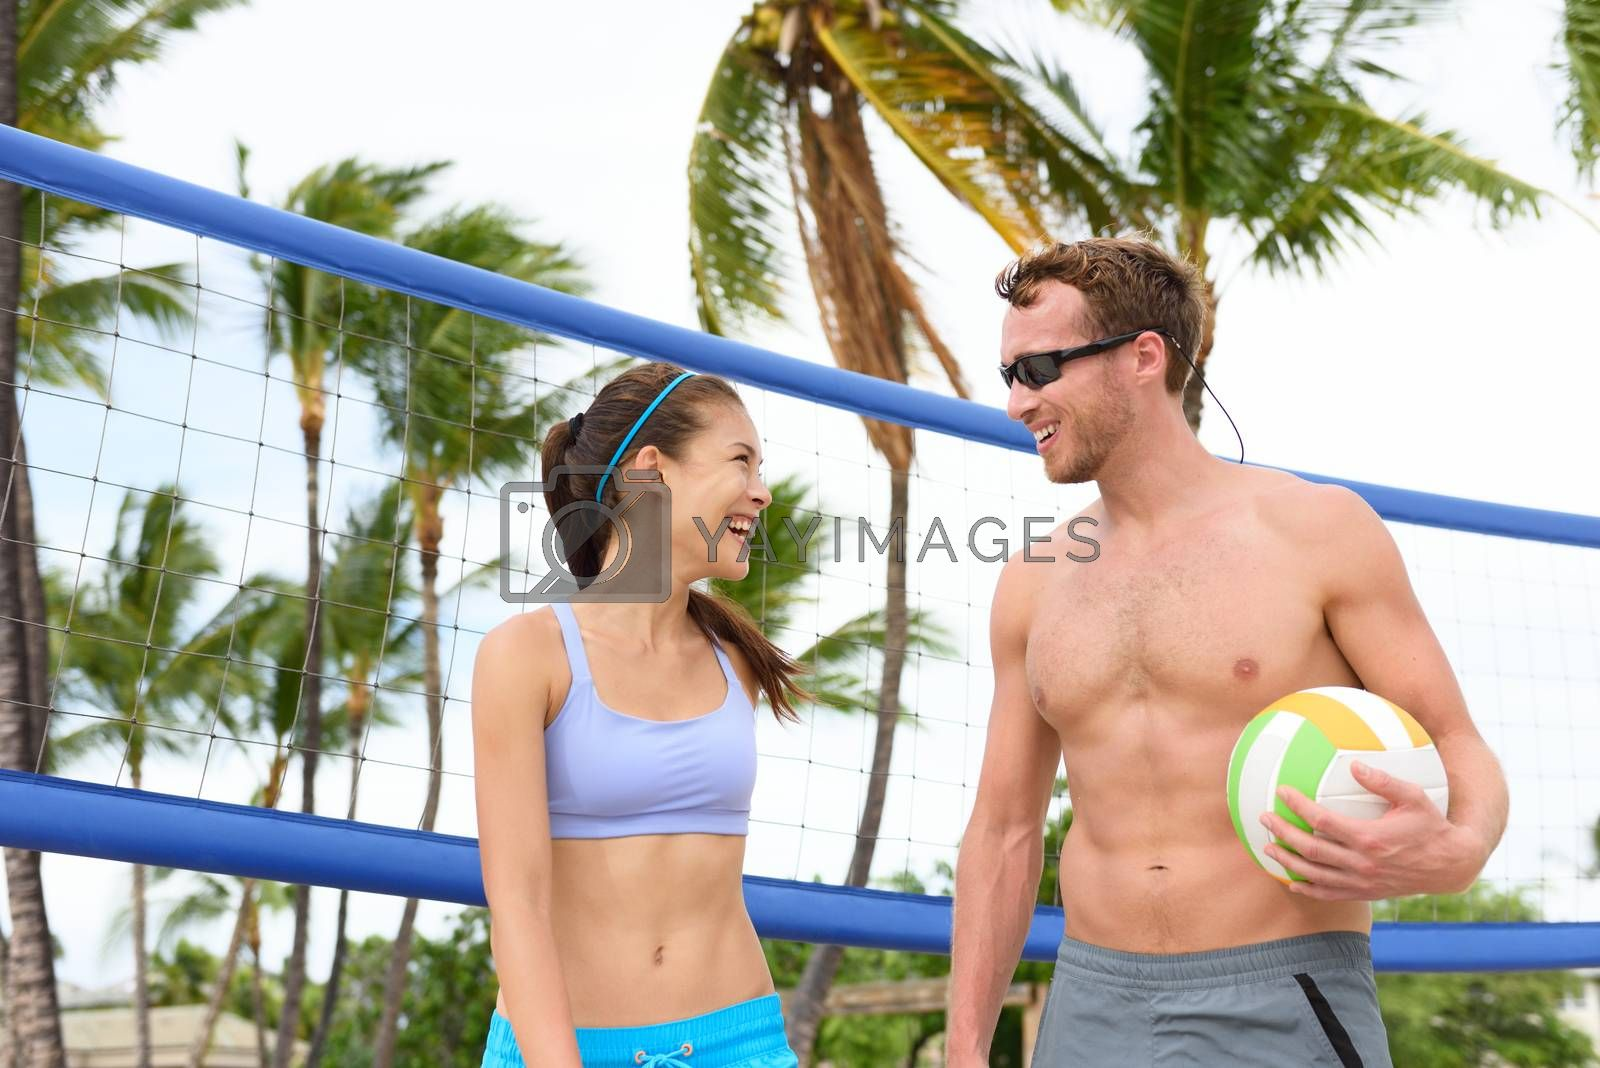 Beach volleyball - people playing active lifestyle by Maridav